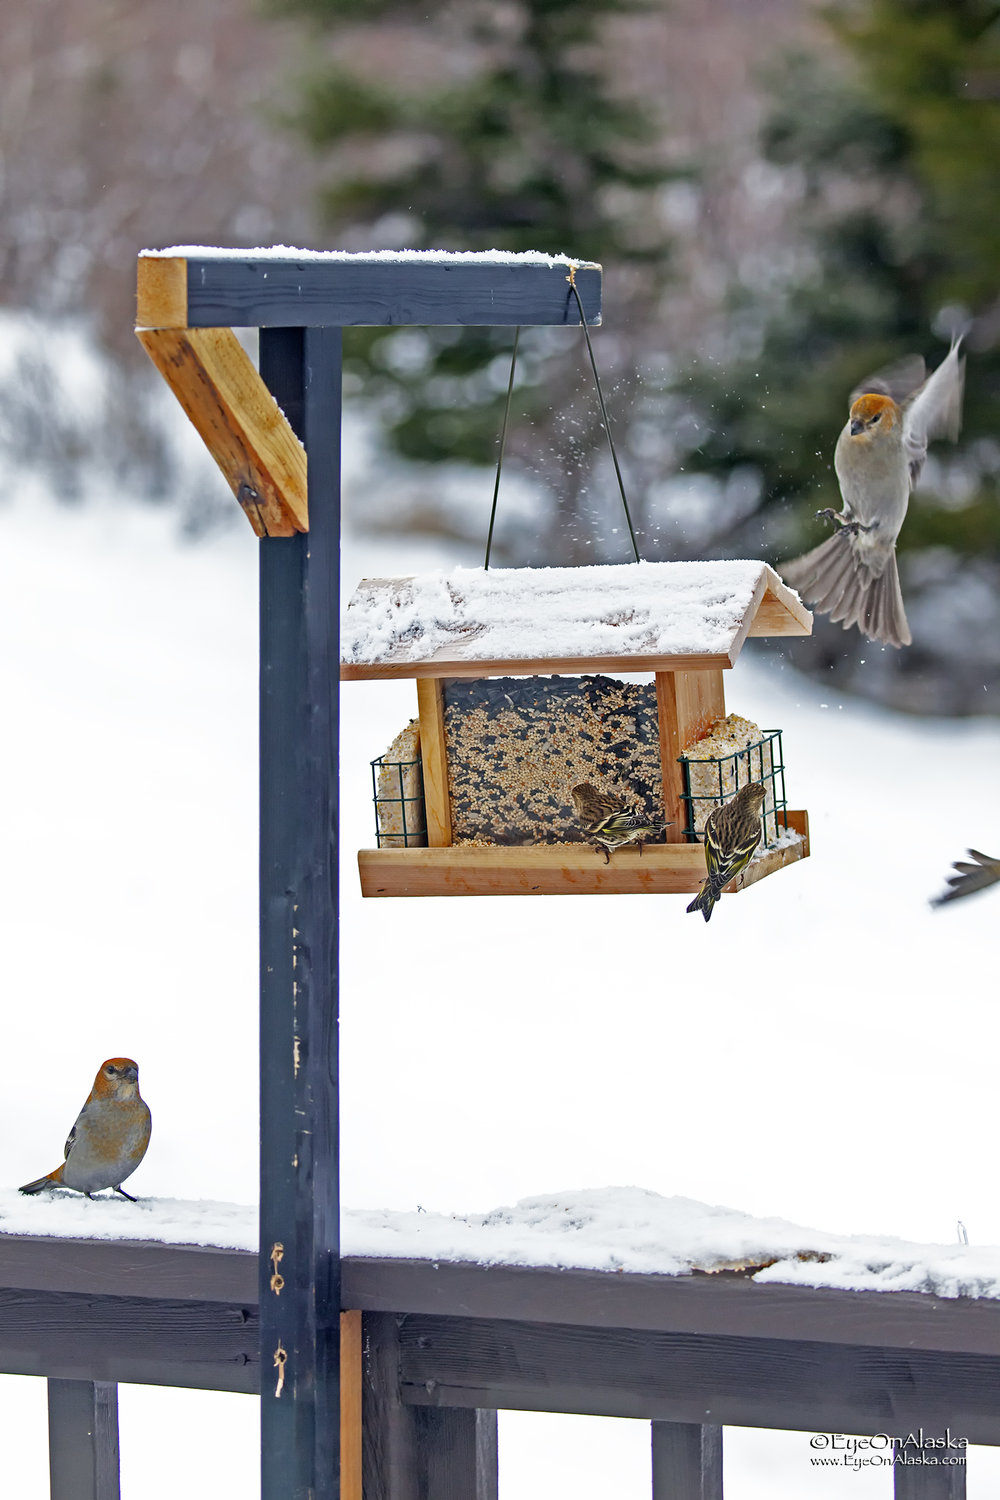 The little birds are Pine Siskin's.